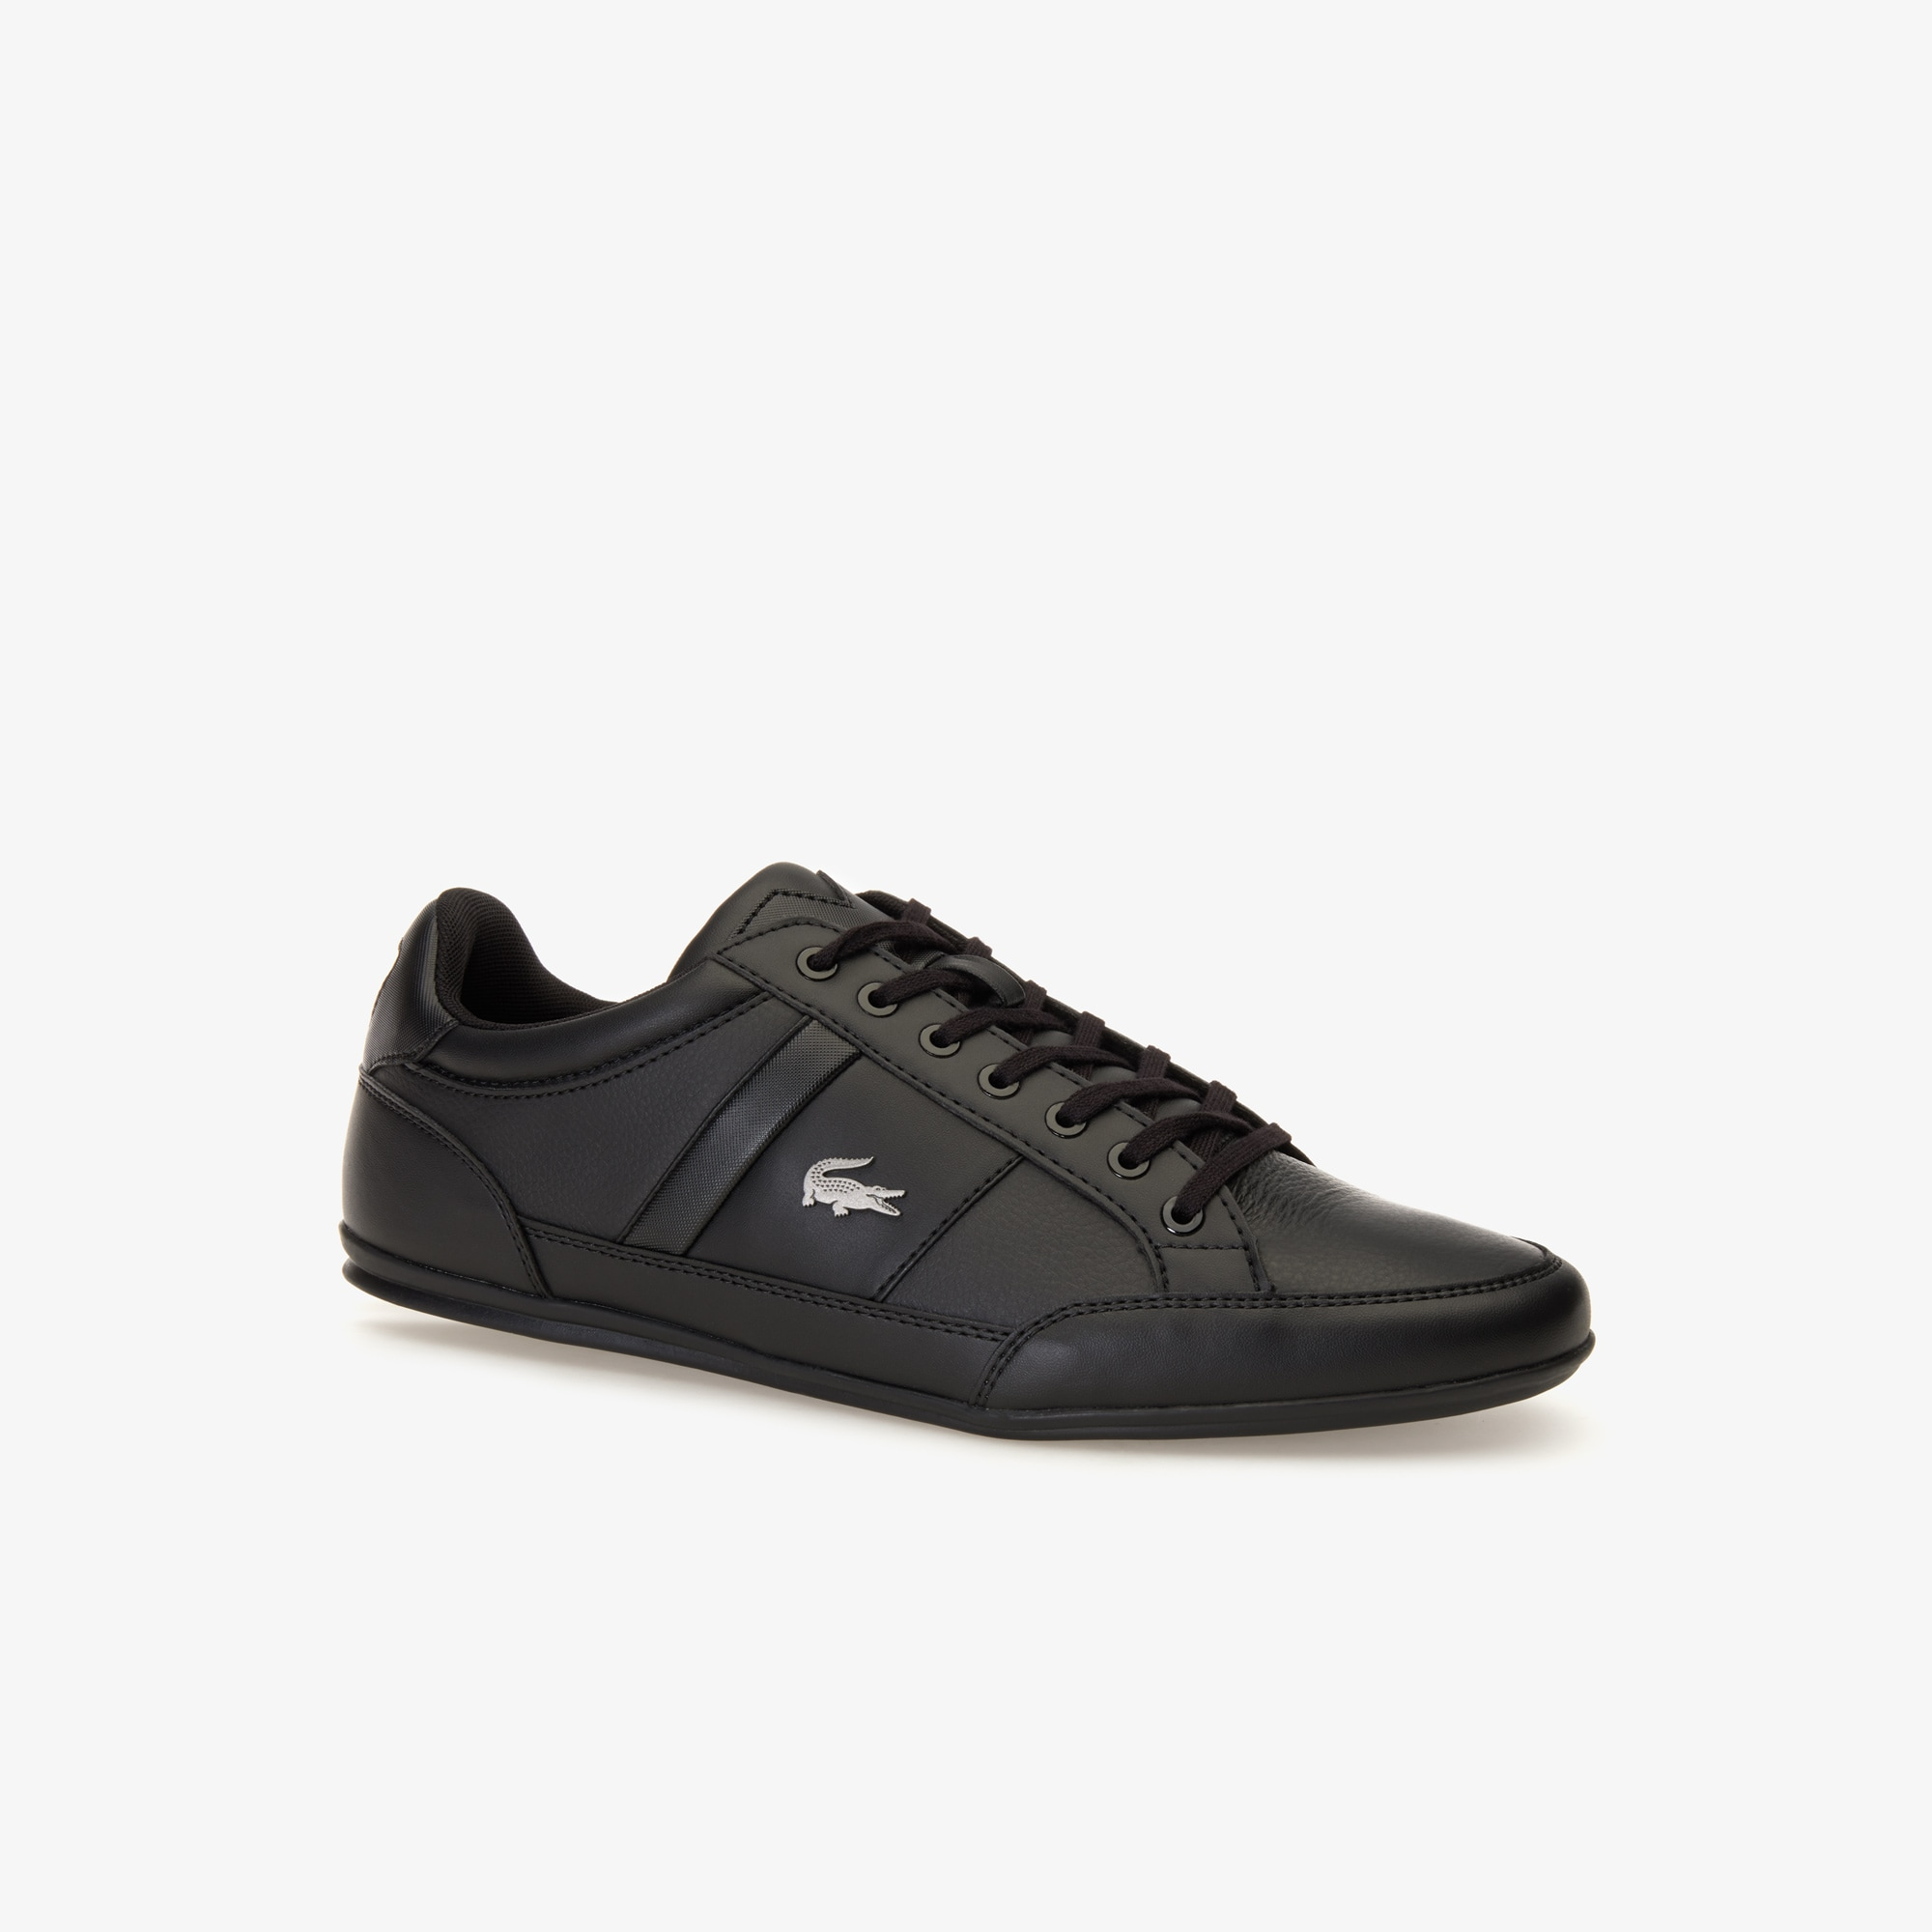 Homme Lacoste Lacoste Collection Collection Chaussures Homme Chaussures Chaussures qvPEv